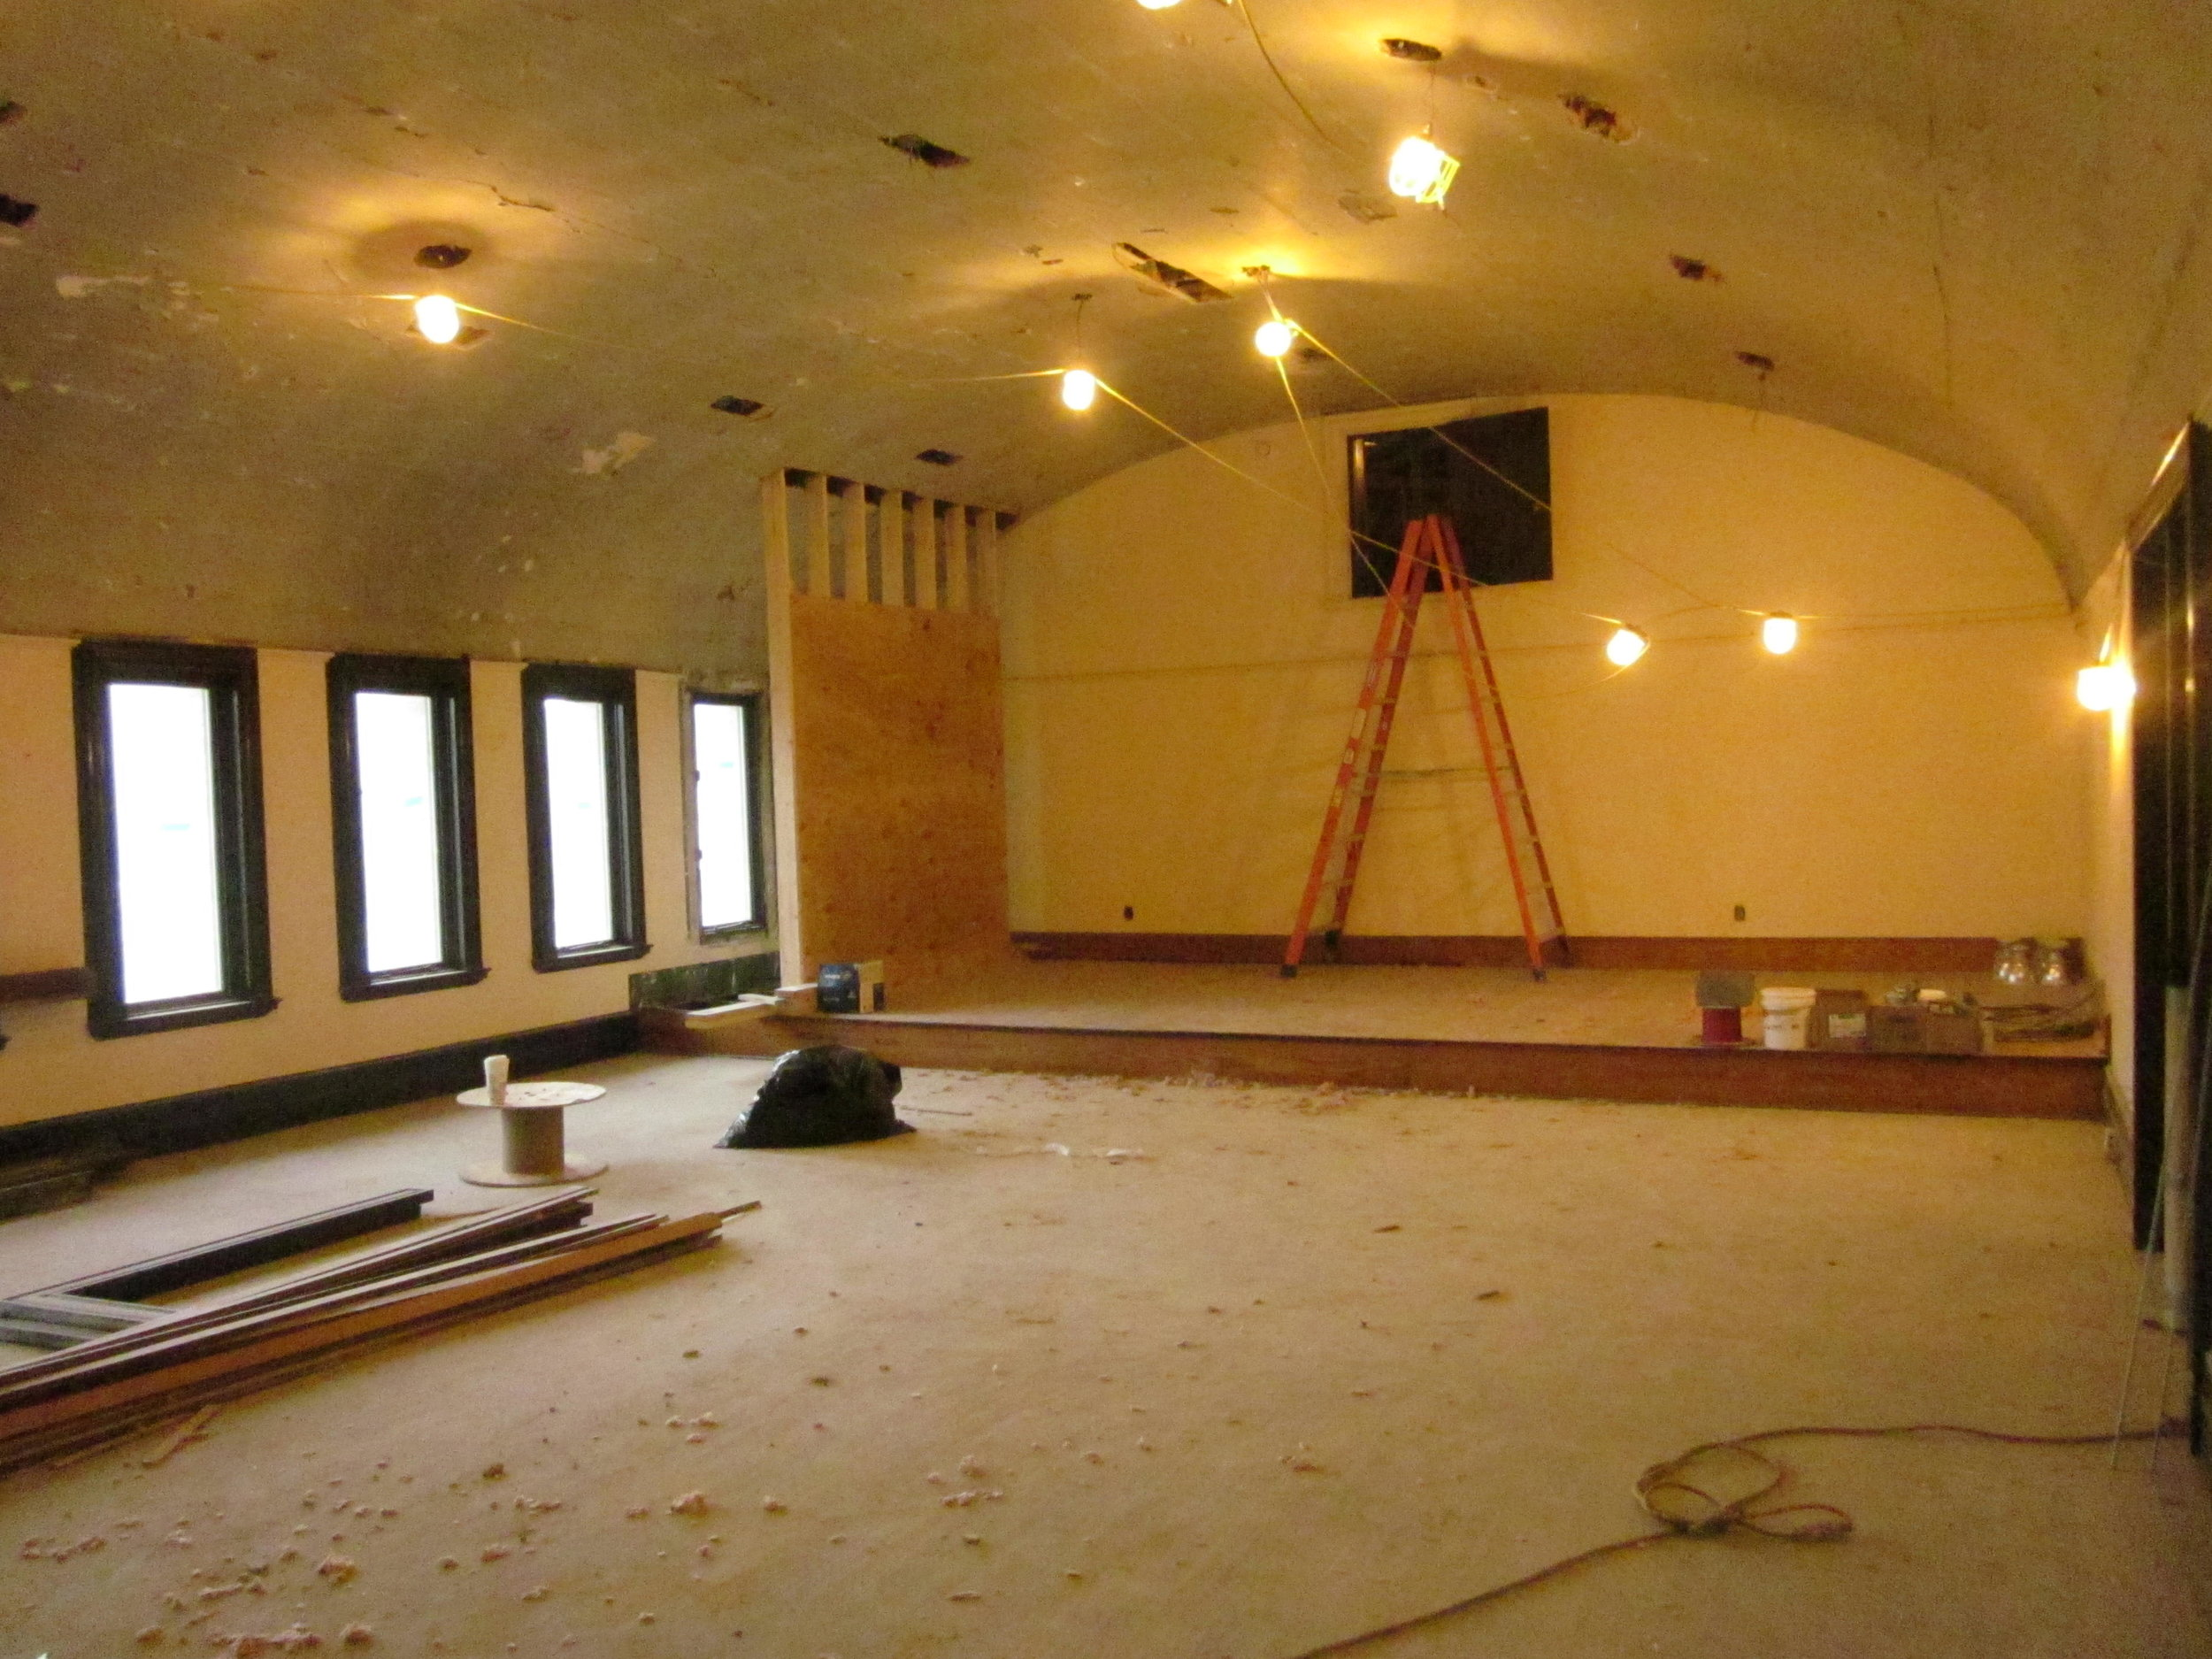 Carnegie Room. False wall holding up the roof so a window can be removed to create a doorway into the new south addition.